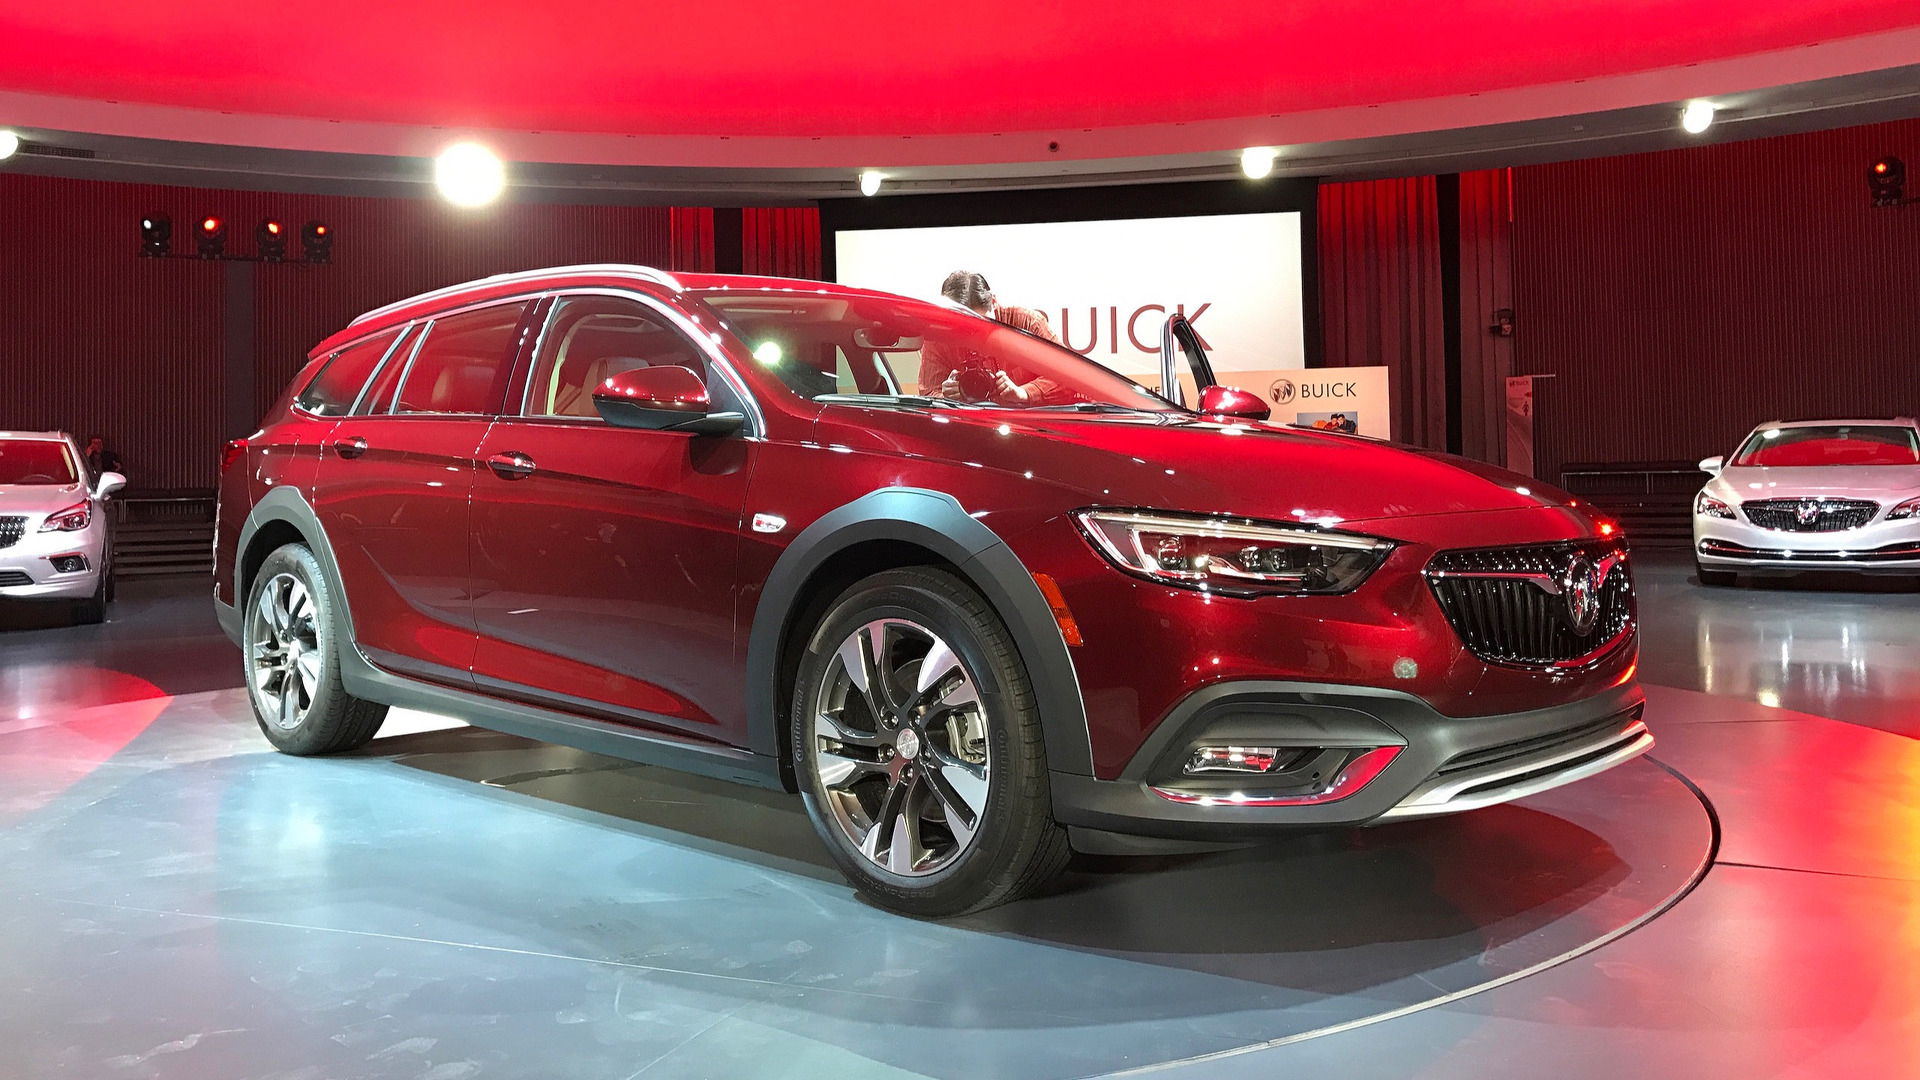 2018 Buick Regal Arrives With Sportback And Tourx Body Styles New 2021 Buick Regal Tourx Accessories, Changes, Release Date